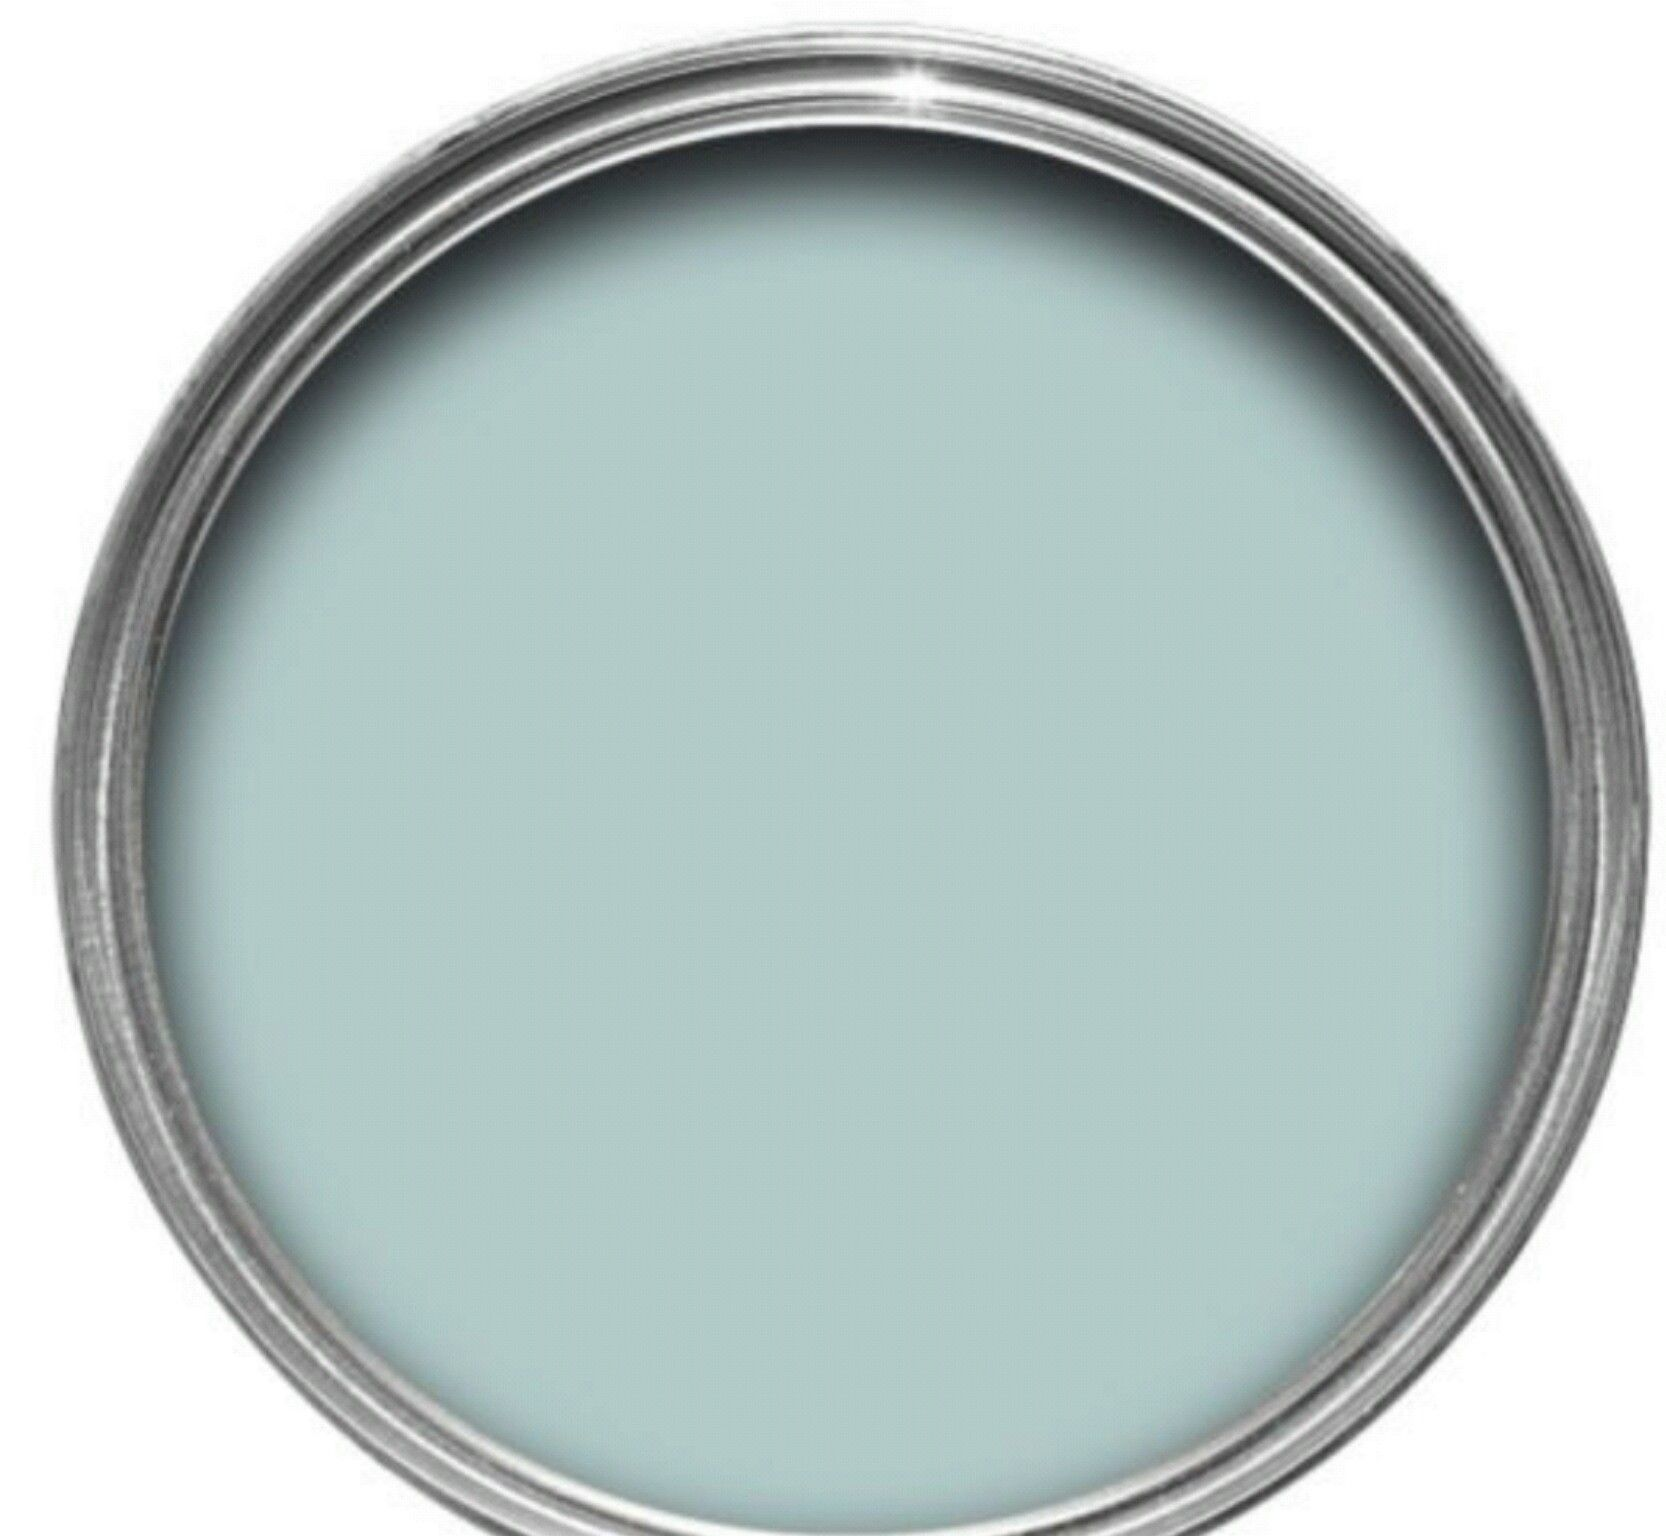 Crown Kitchen Bathroom Paint In Olive Press Green And: Mint Macaroon (dulux) EAN: 5010212574041